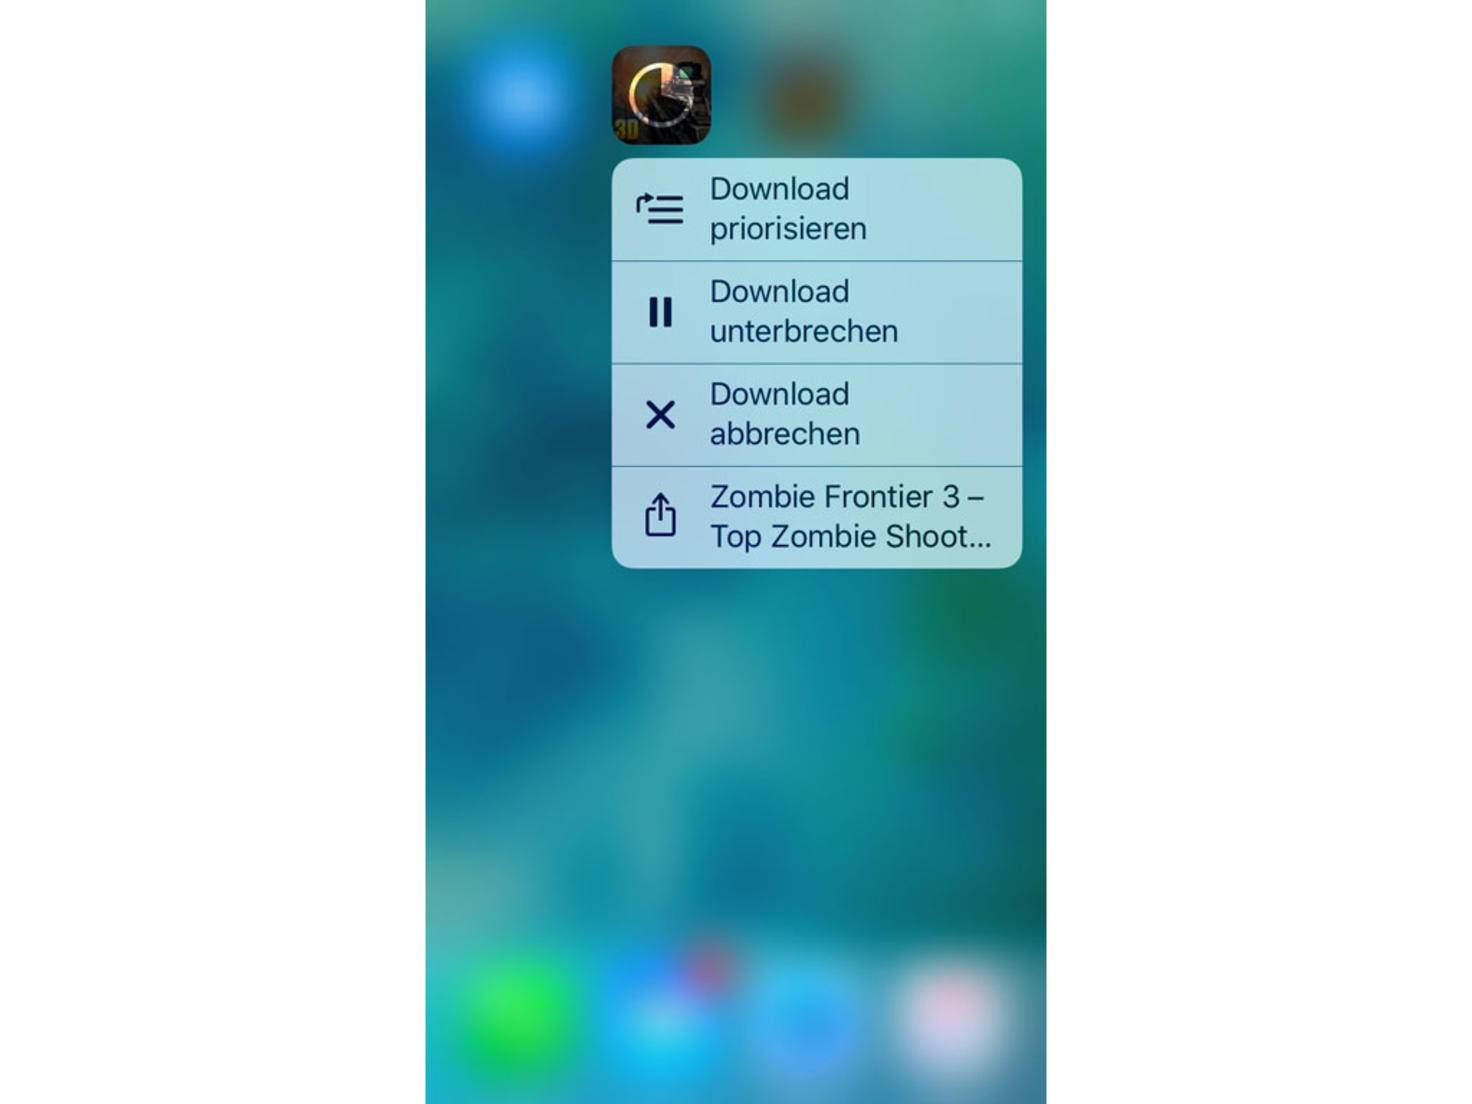 iOS 10 Downloads 3D Touch